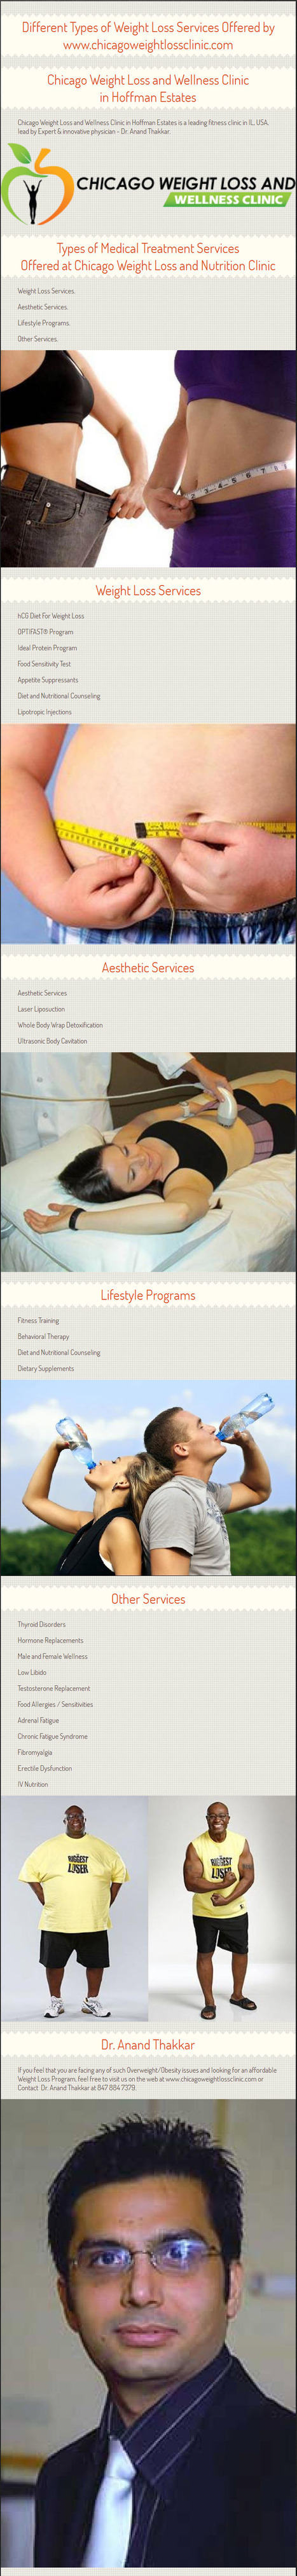 Different Types of Weight Loss Services Offered by www.chicagoweightlossclinic.com | Chicago Weight Loss | Scoop.it